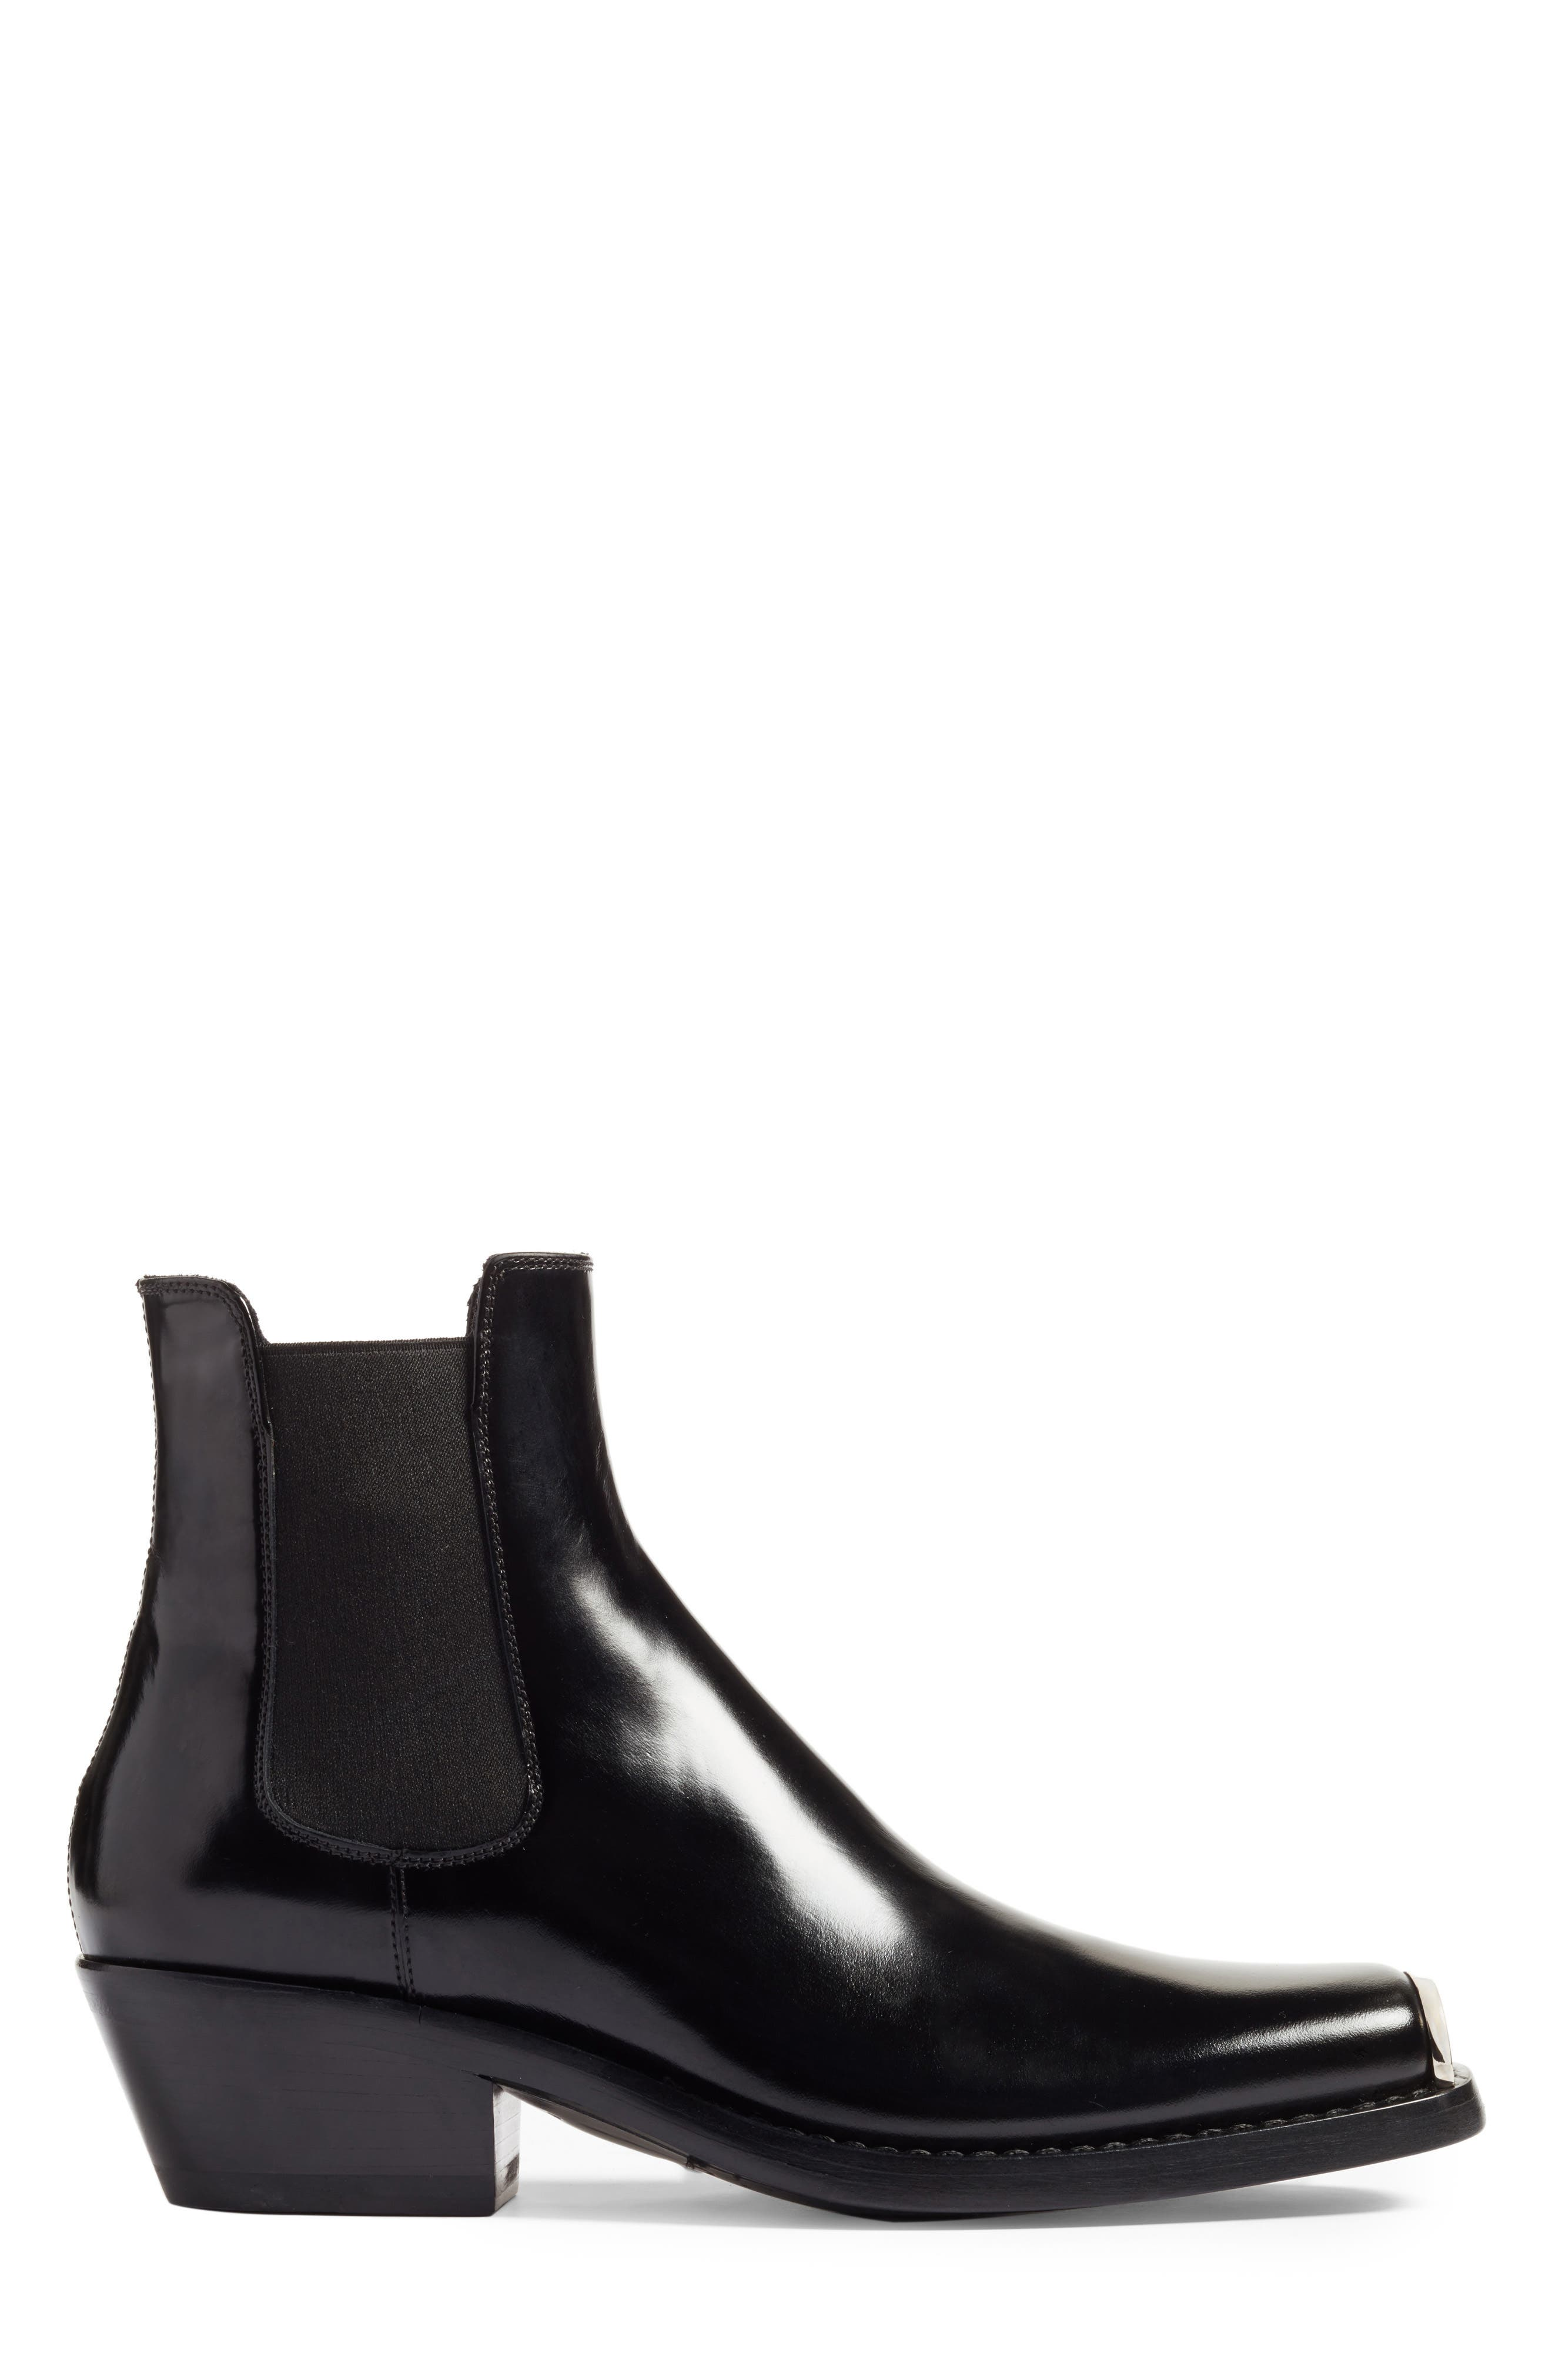 Claire Western Chelsea Boot,                             Alternate thumbnail 3, color,                             BLACK ABRASIVATO